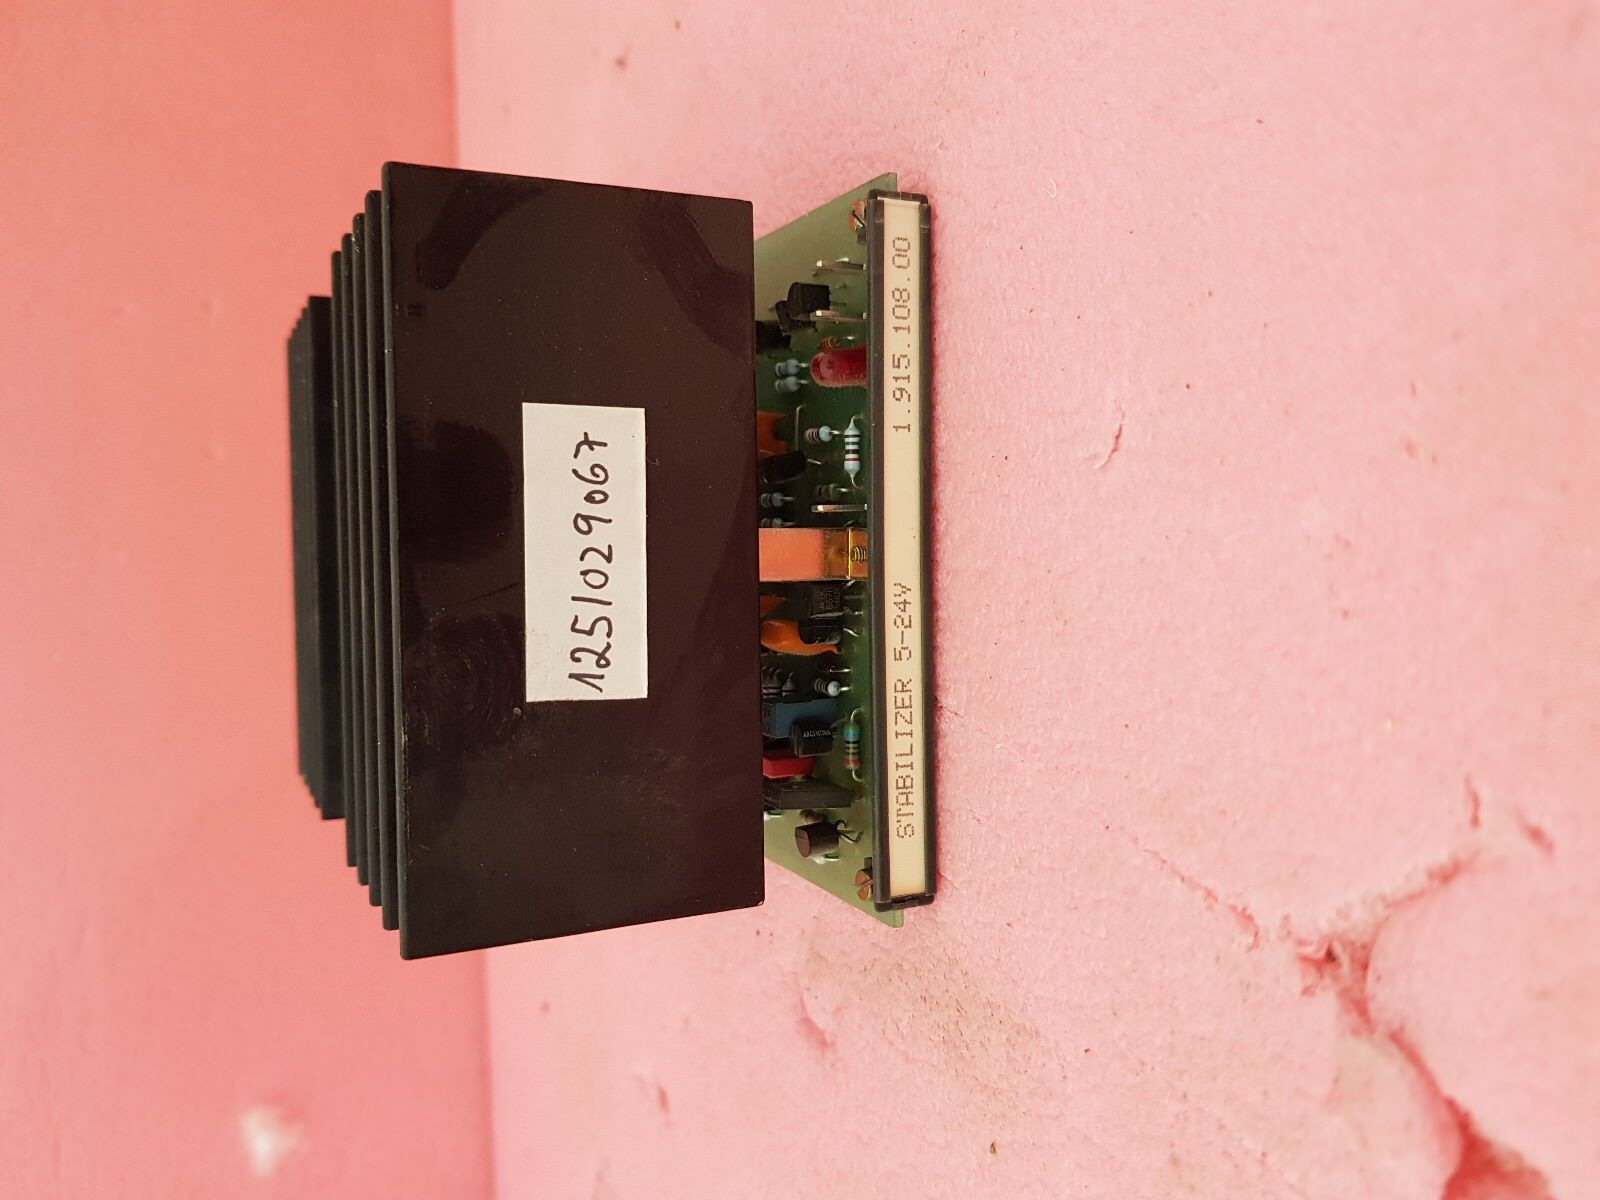 STABILIZER HIGH CURRENT 5-24V FOR STUDER A900 A963 A970 A980 1.915.108.00